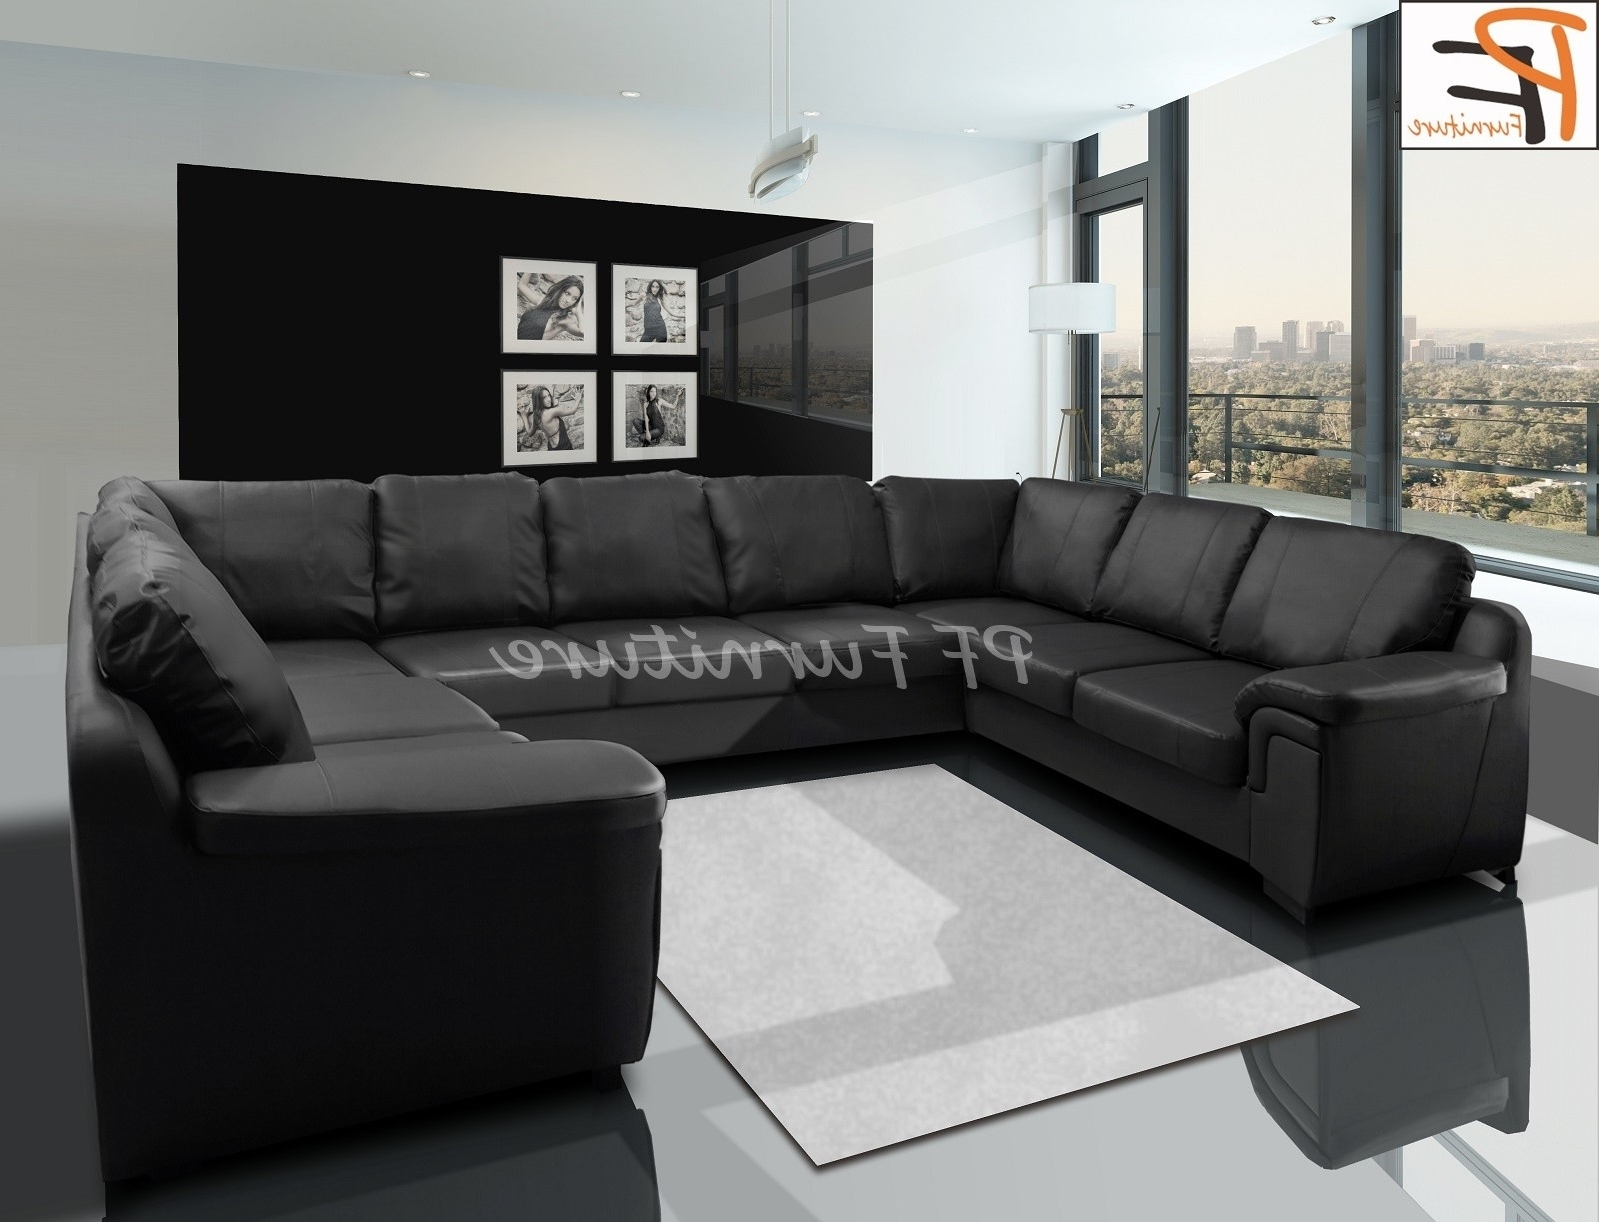 Large U Shaped Sofa – Home And Textiles In Most Current Big U Shaped Couches (View 13 of 15)